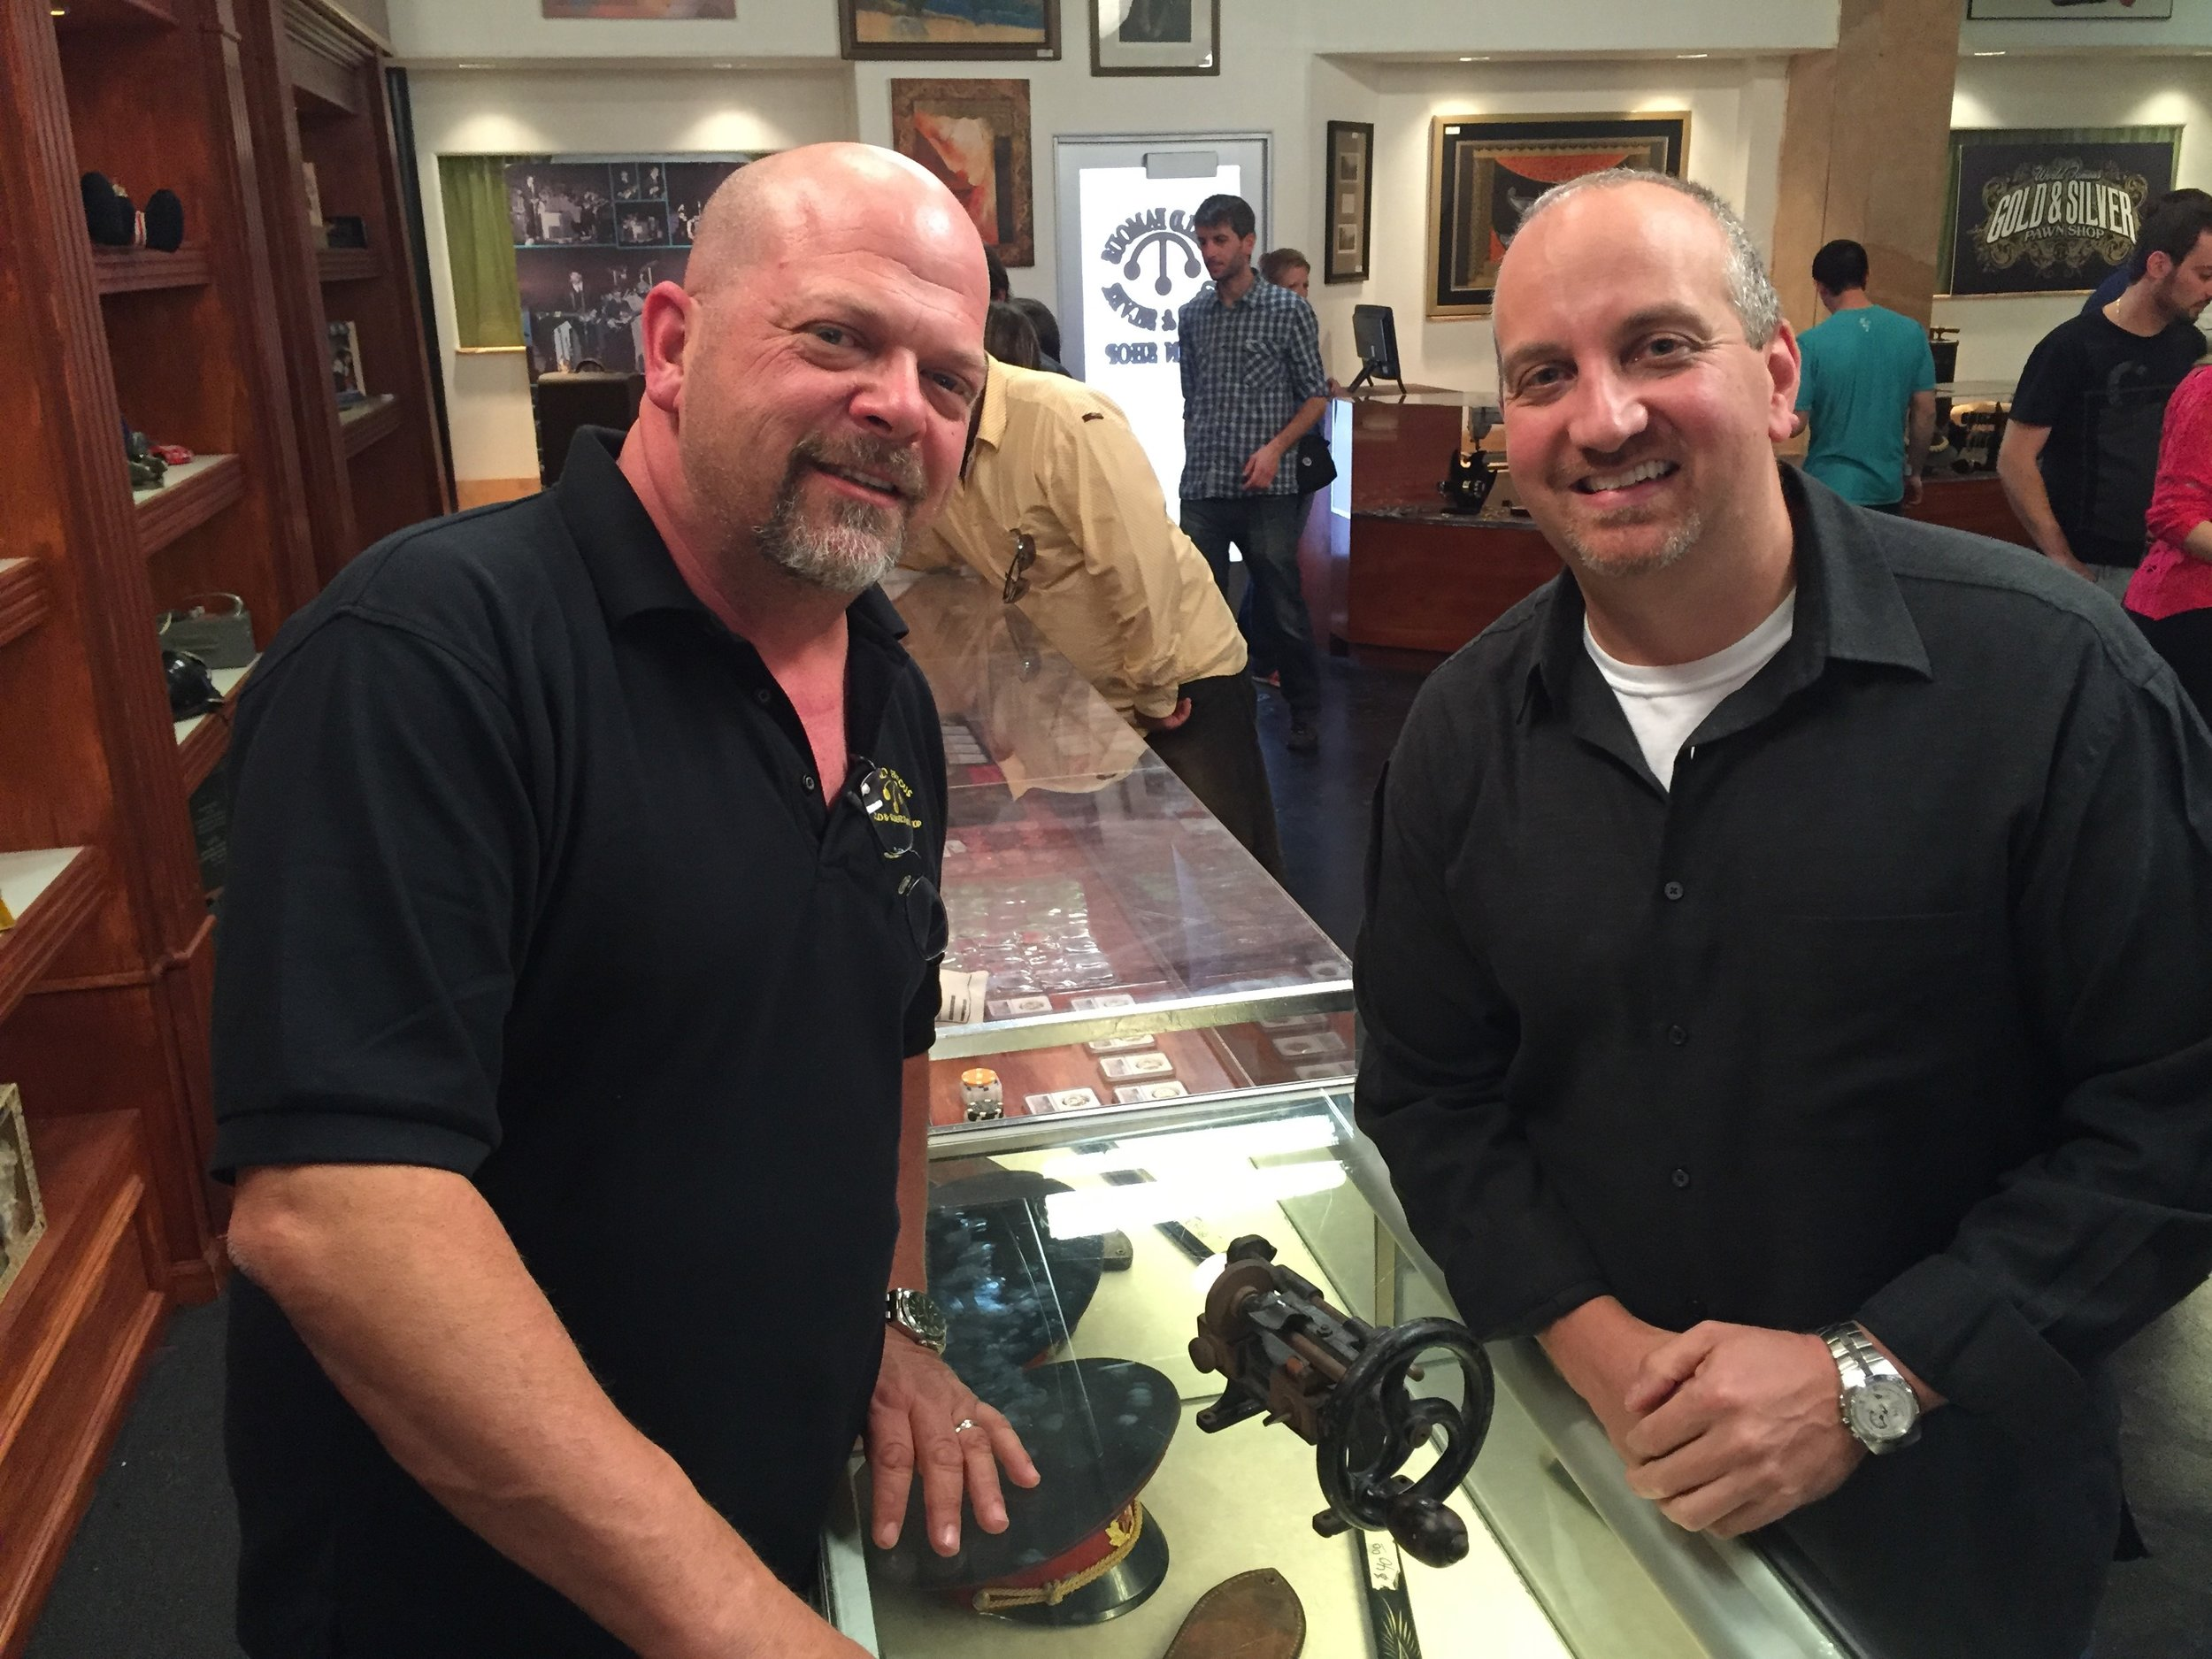 Joel and Rick from Pawn Stars - November 2015  Click on the image to visit The History Channel Page and view our episode of Pawn Stars!